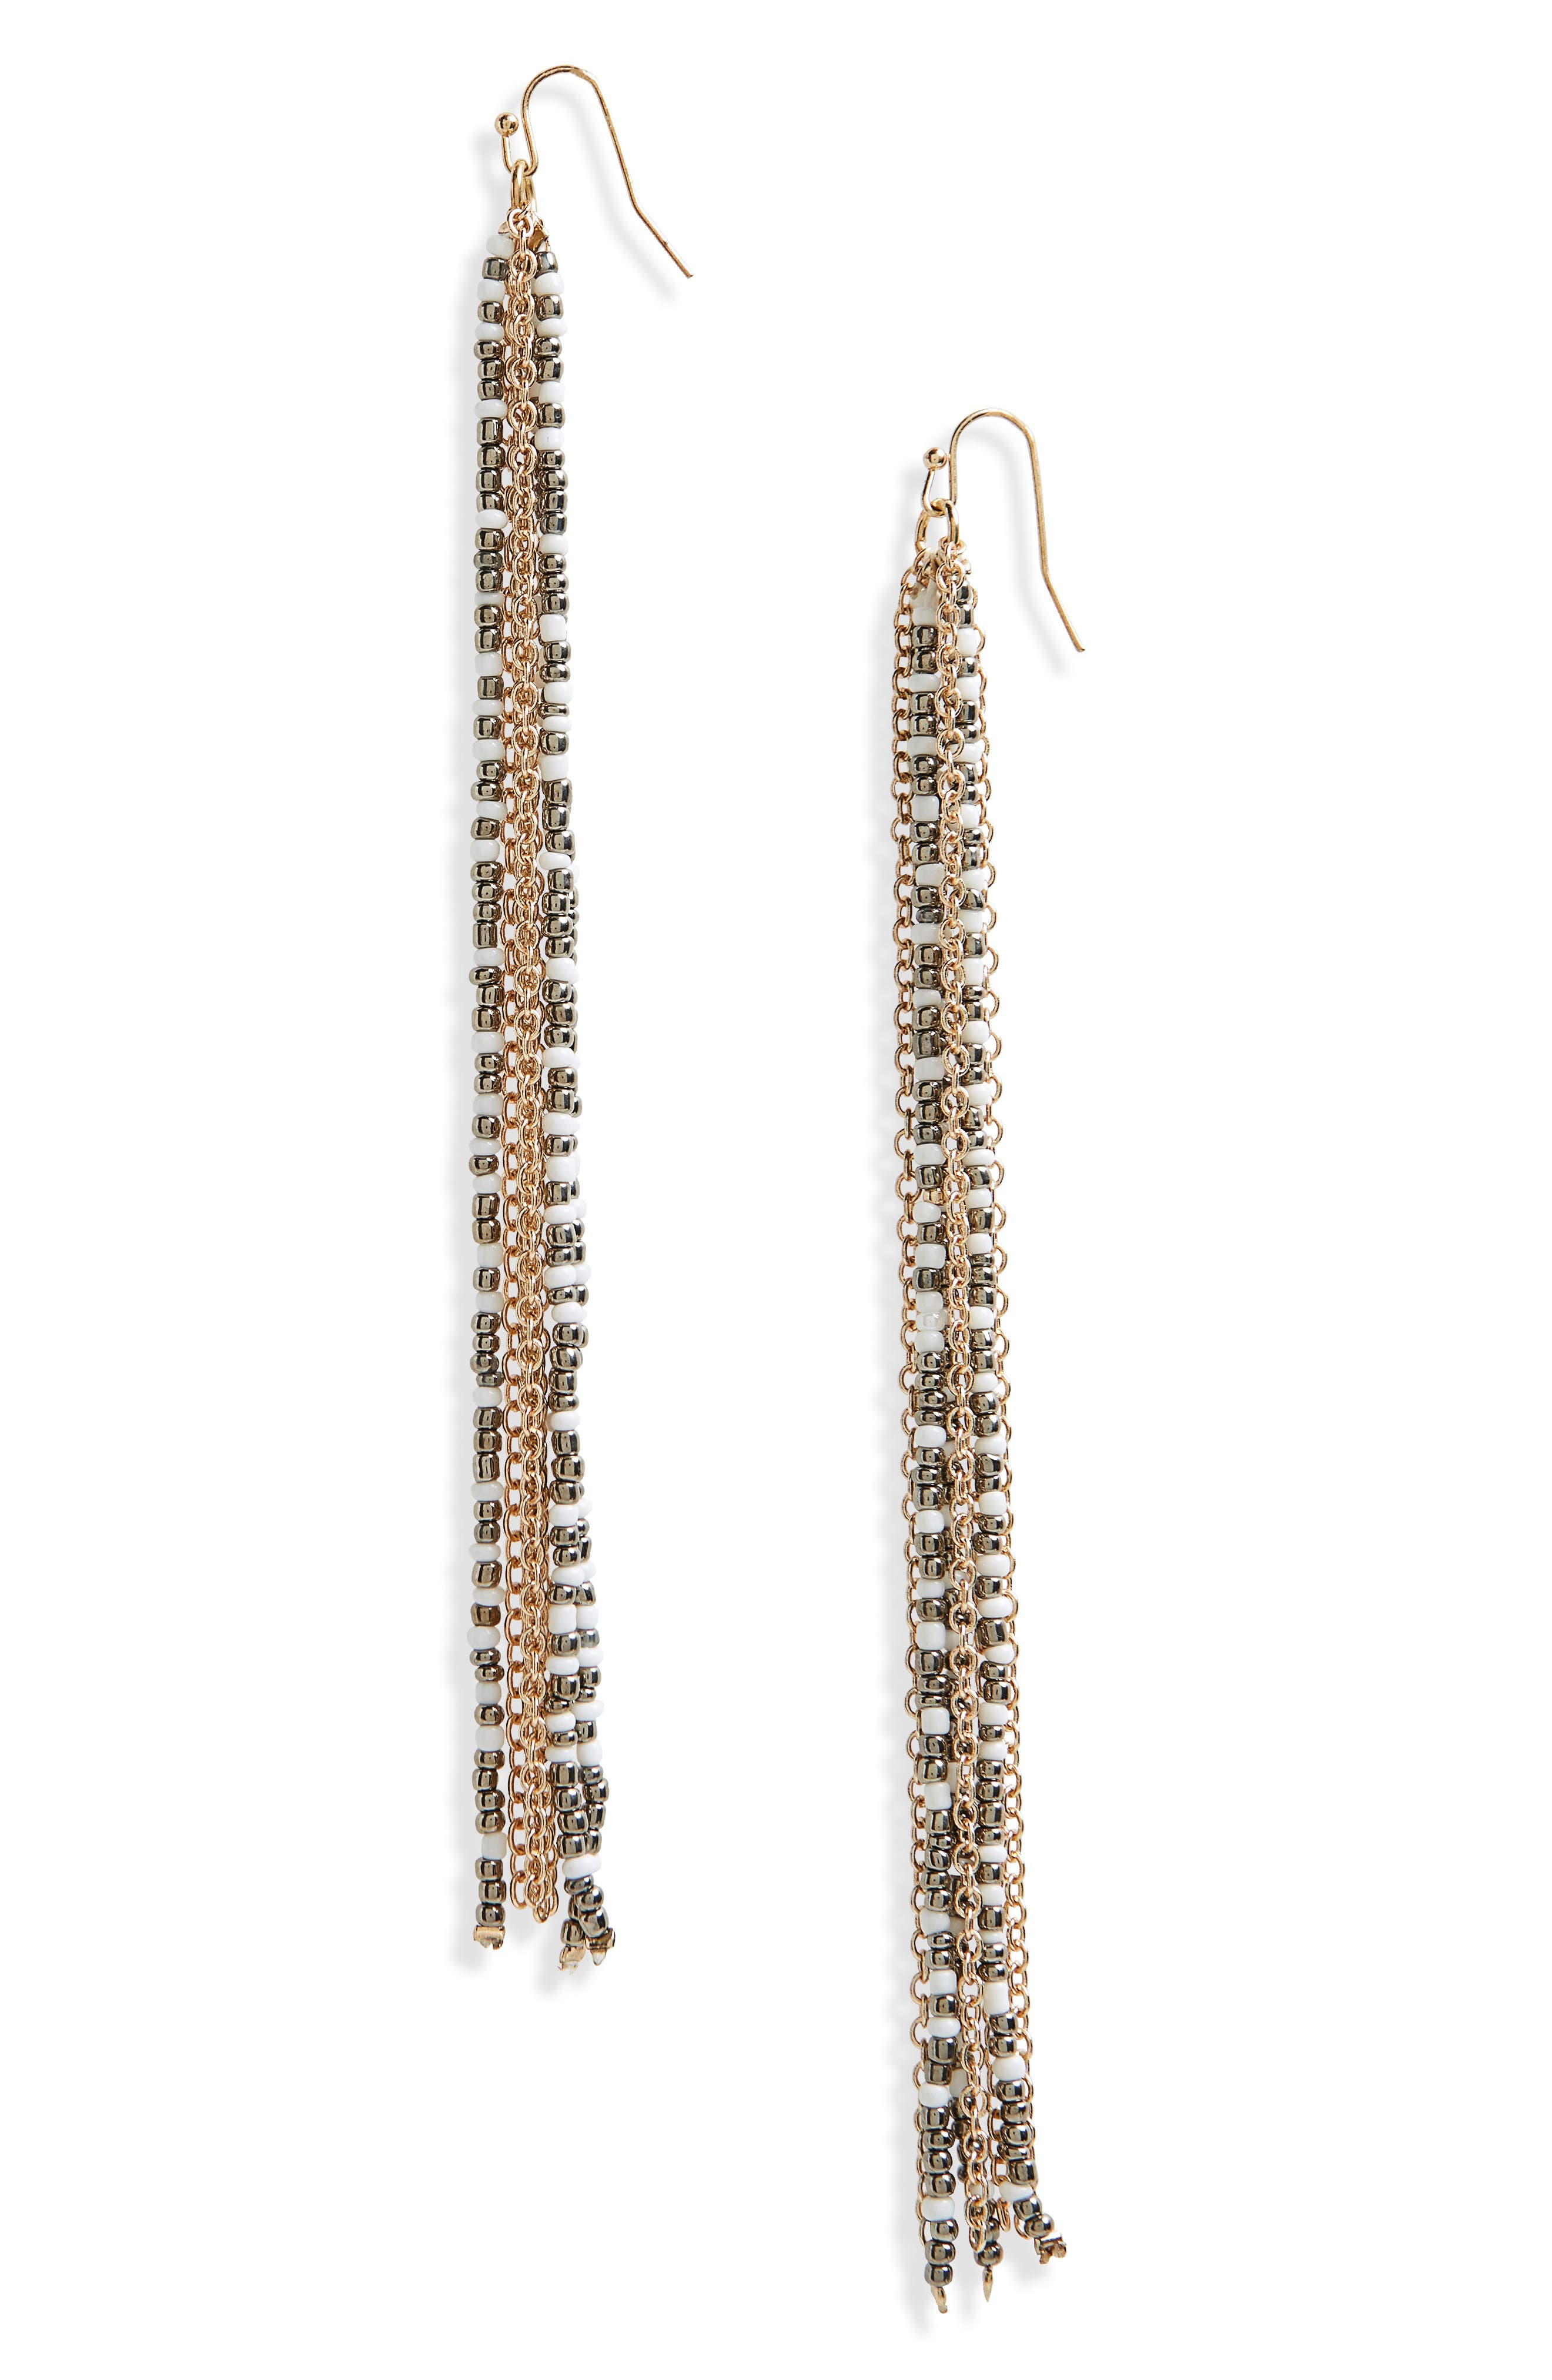 Panacea Linear Seed Bead Earrings